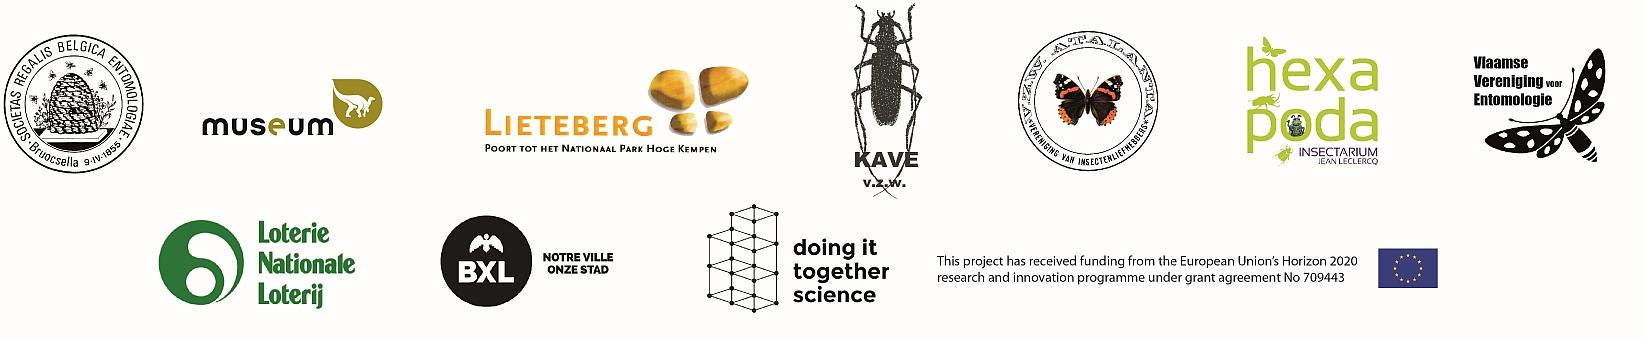 logos Insectenweek/Semaine des Insectes 2019